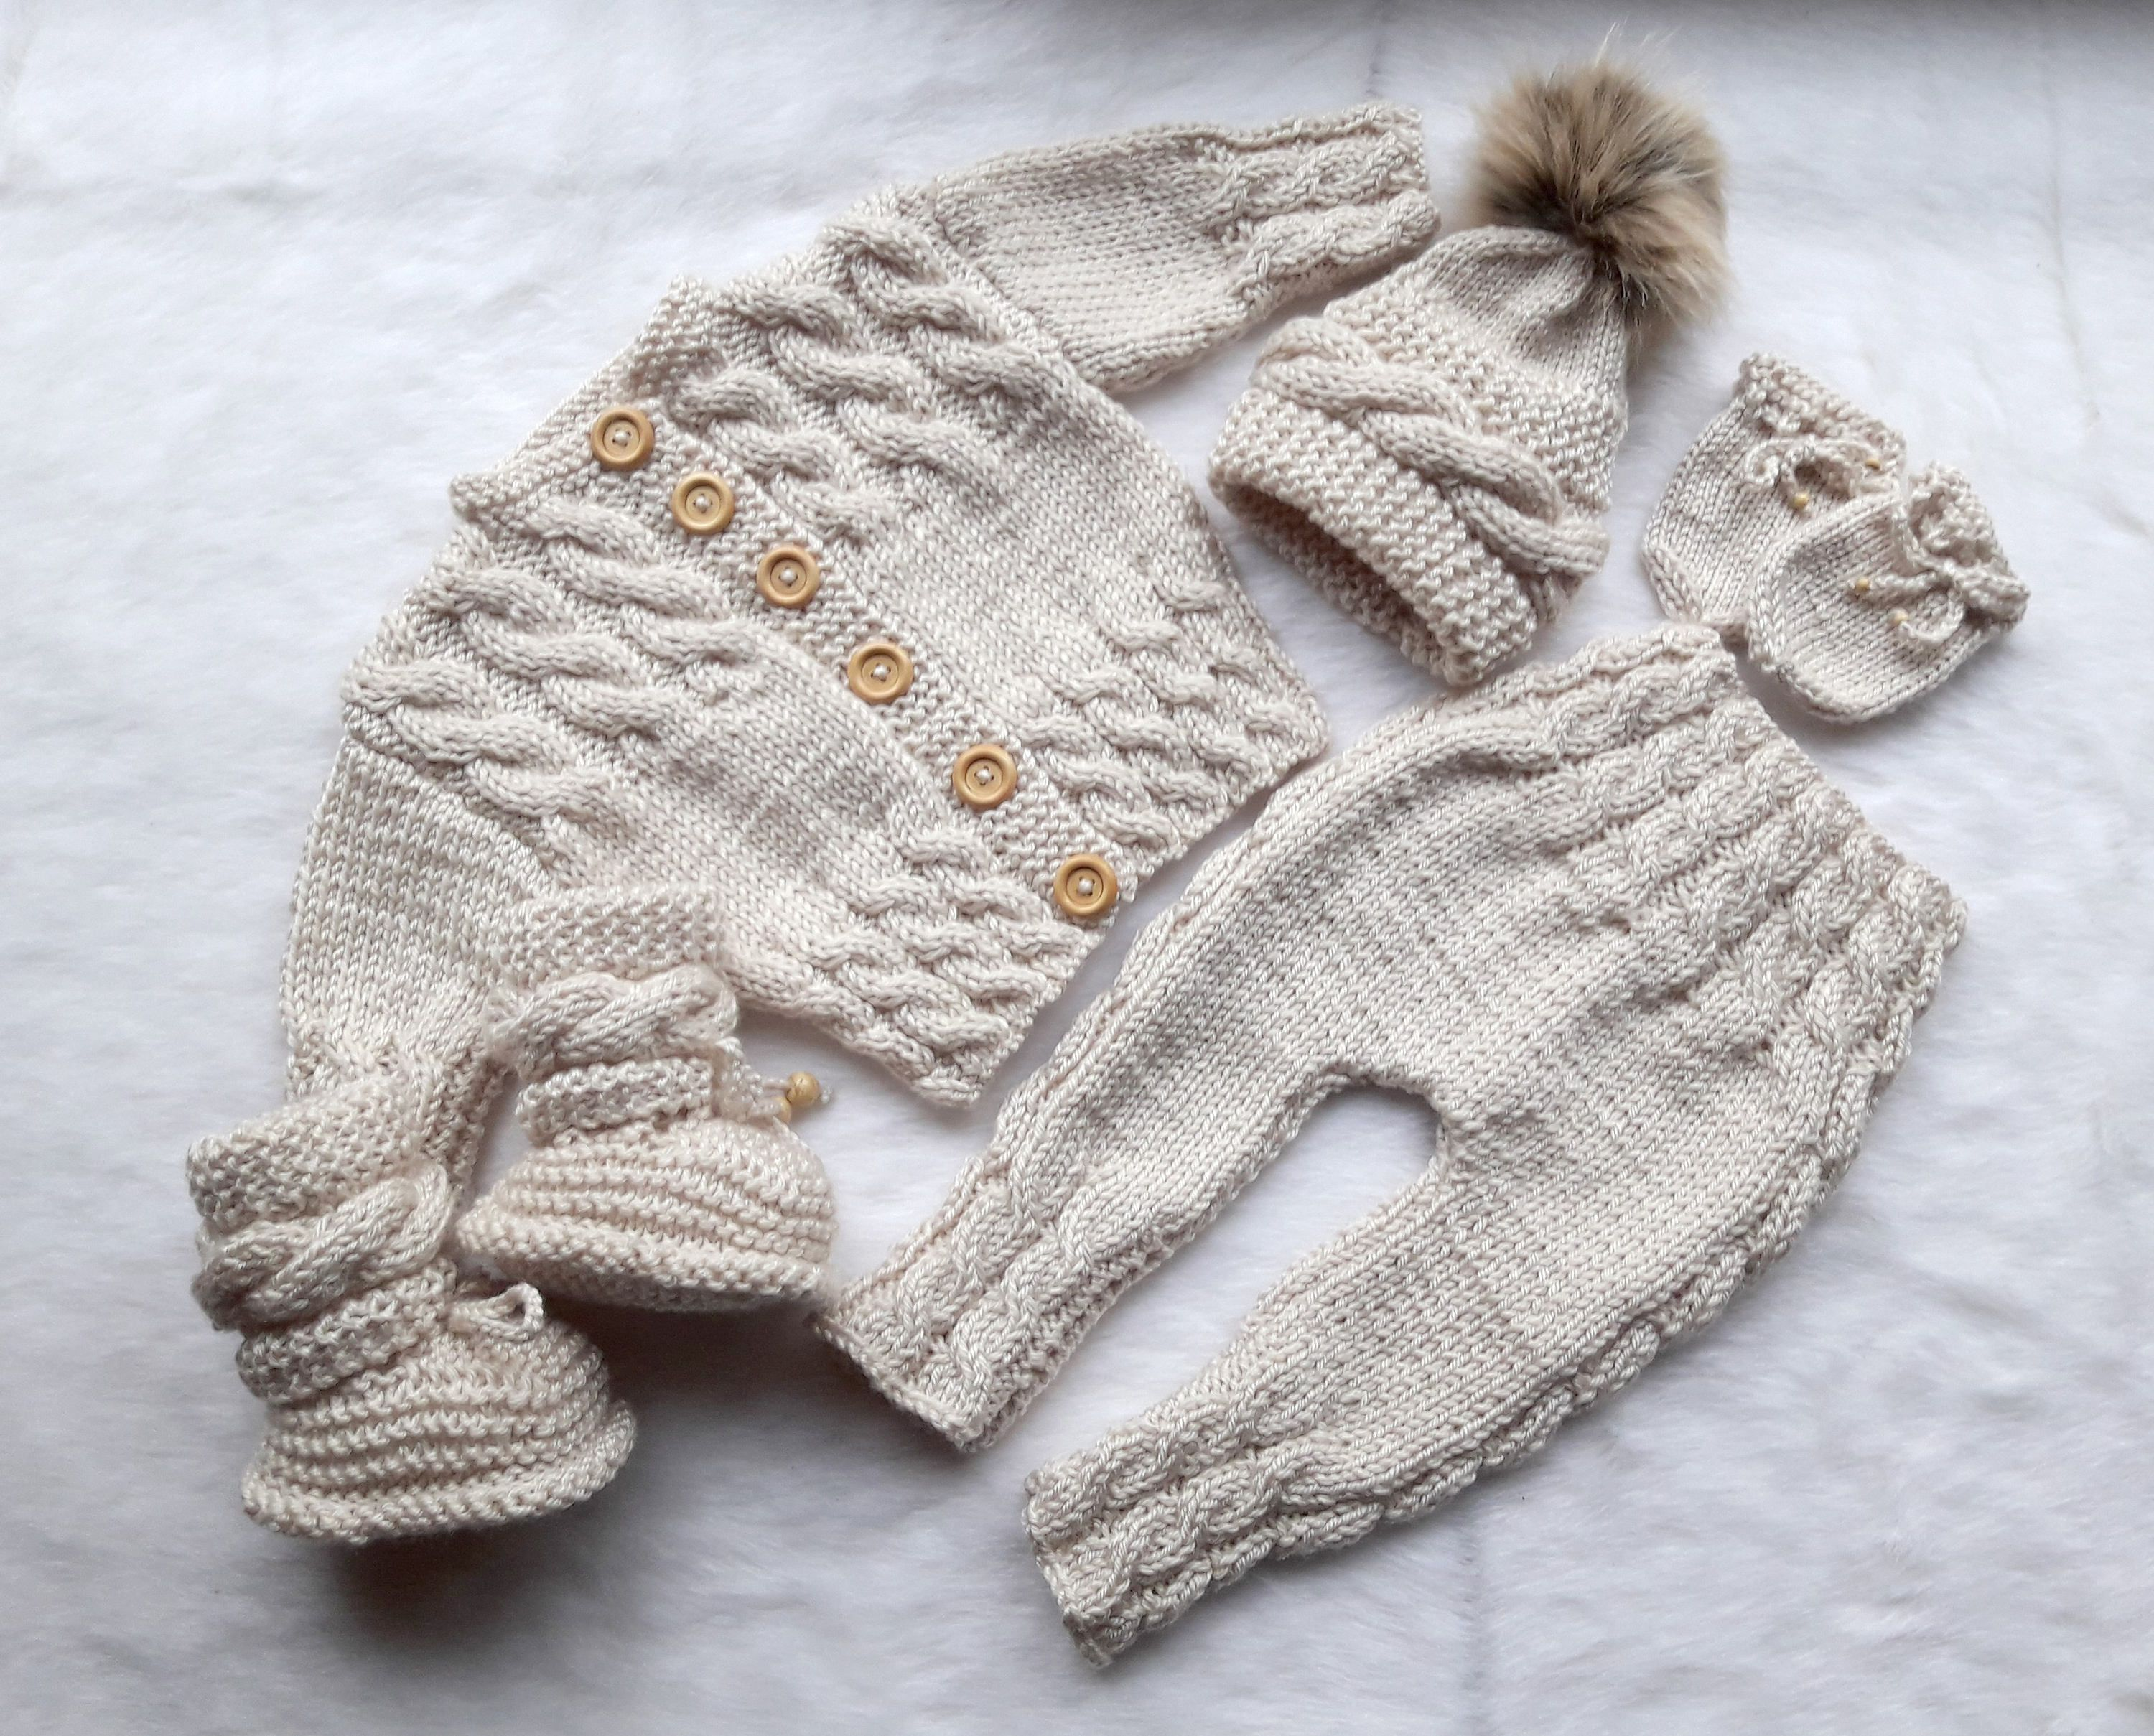 b5ec0bde4 Beige Baby home coming outfit - Knitted baby outfit - Gender neutral ...